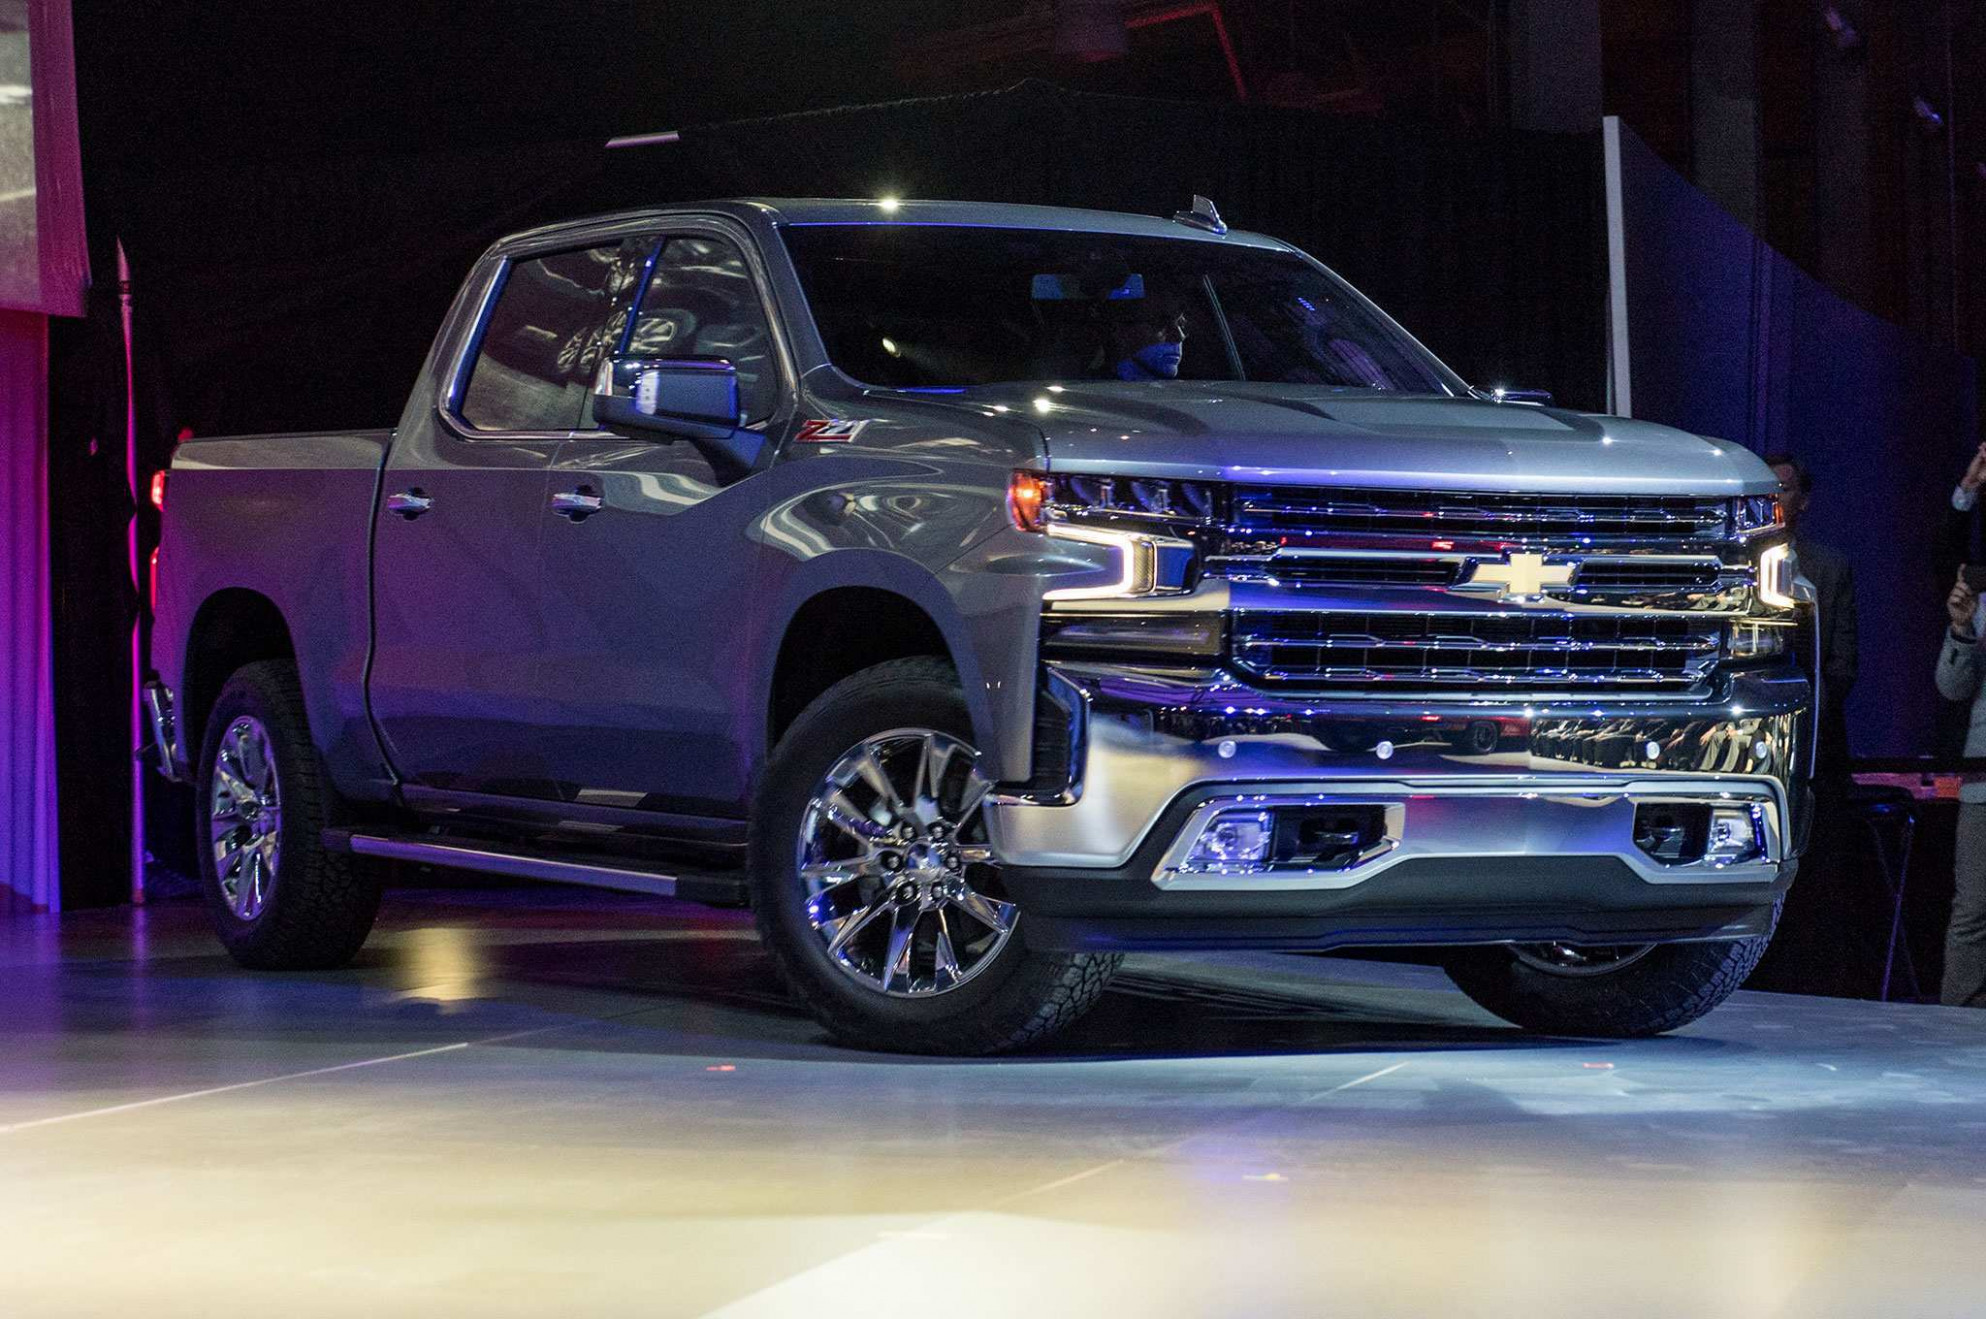 12 All New 12 Chevrolet Silverado 12 Ld Images for 12 ..